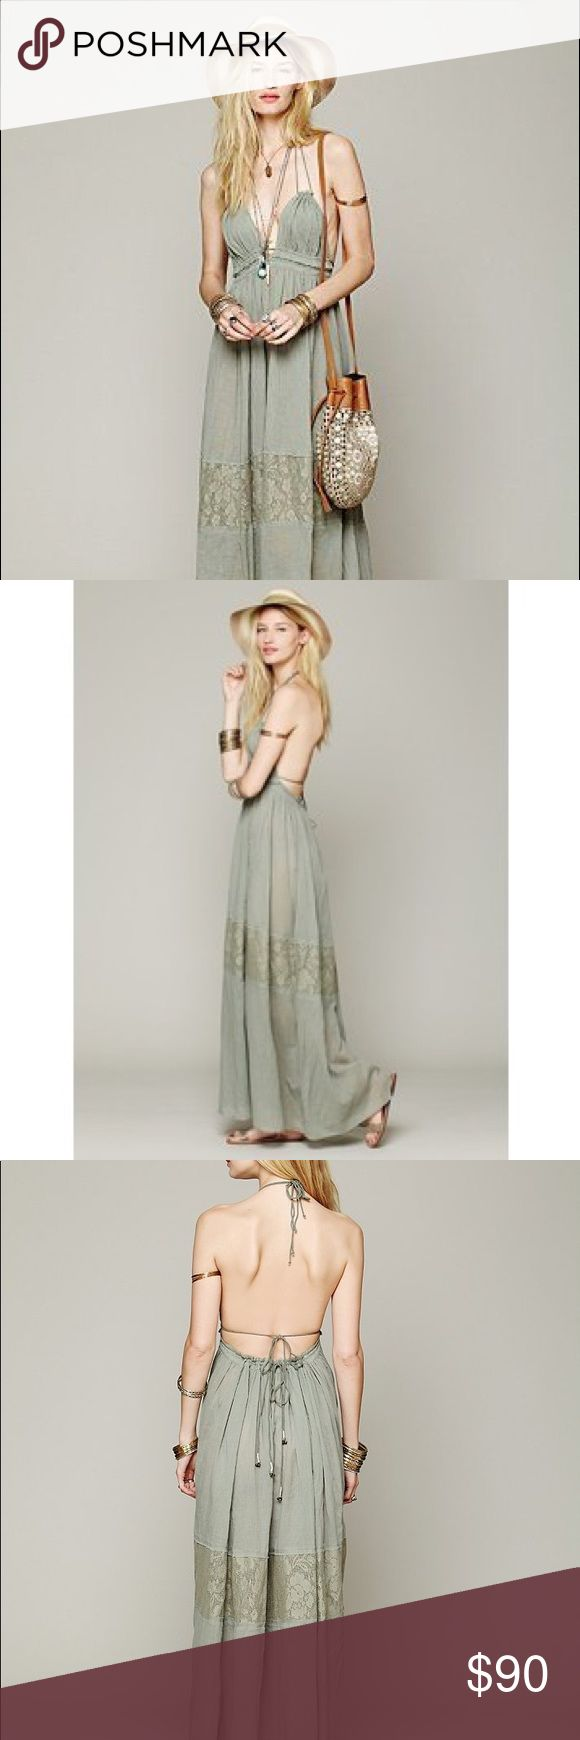 Endless Summer Triangle Top Maxi, Free People Never worn. Free People Dresses Maxi